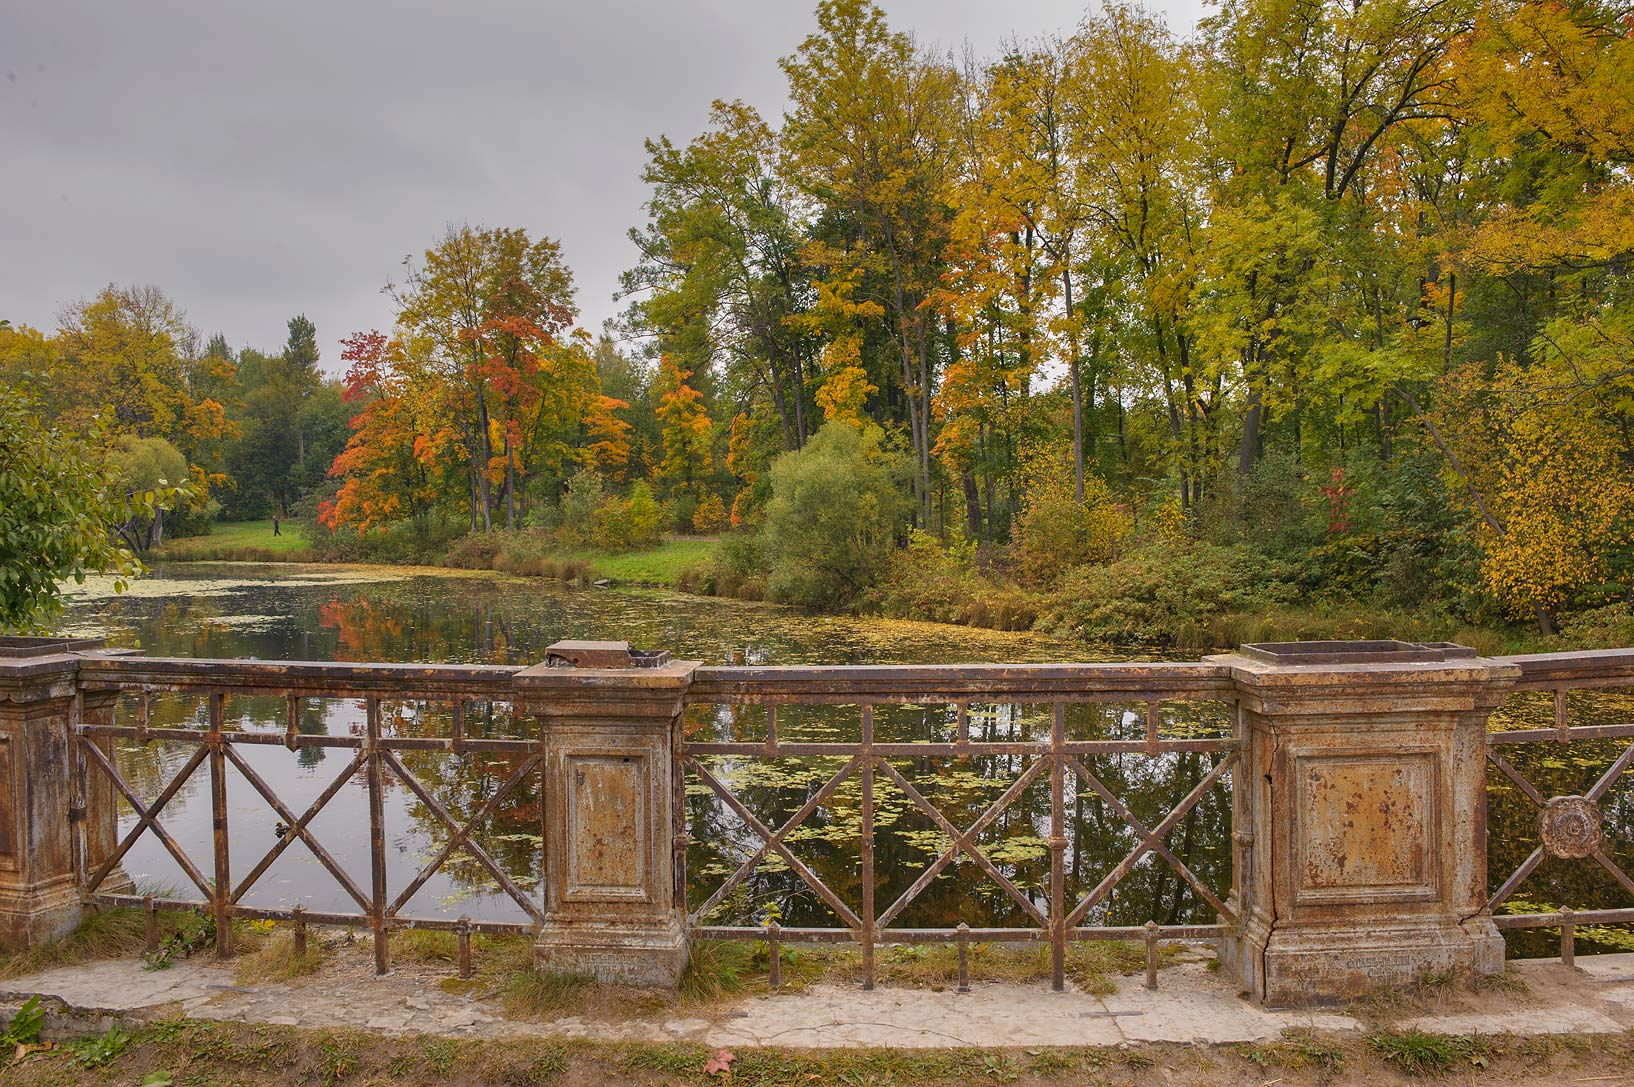 View of Lamsky Pond from Lamsky Bridge in...Selo) near St.Petersburg, Russia